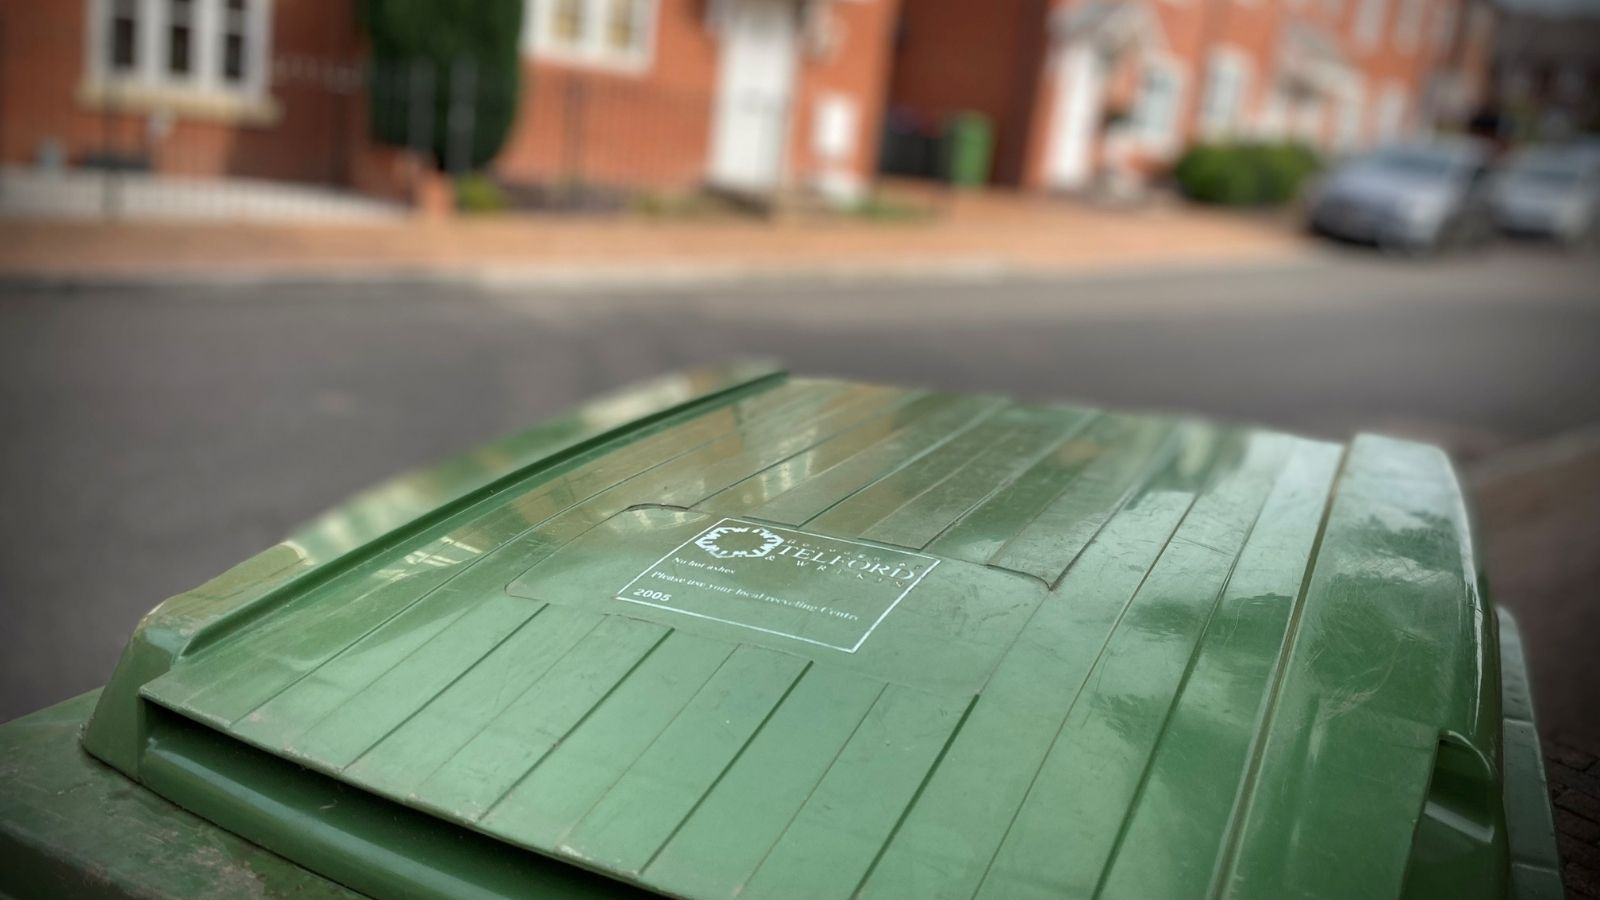 Covid-19 isolation rules impact on green bin collections in limited areas of Telford